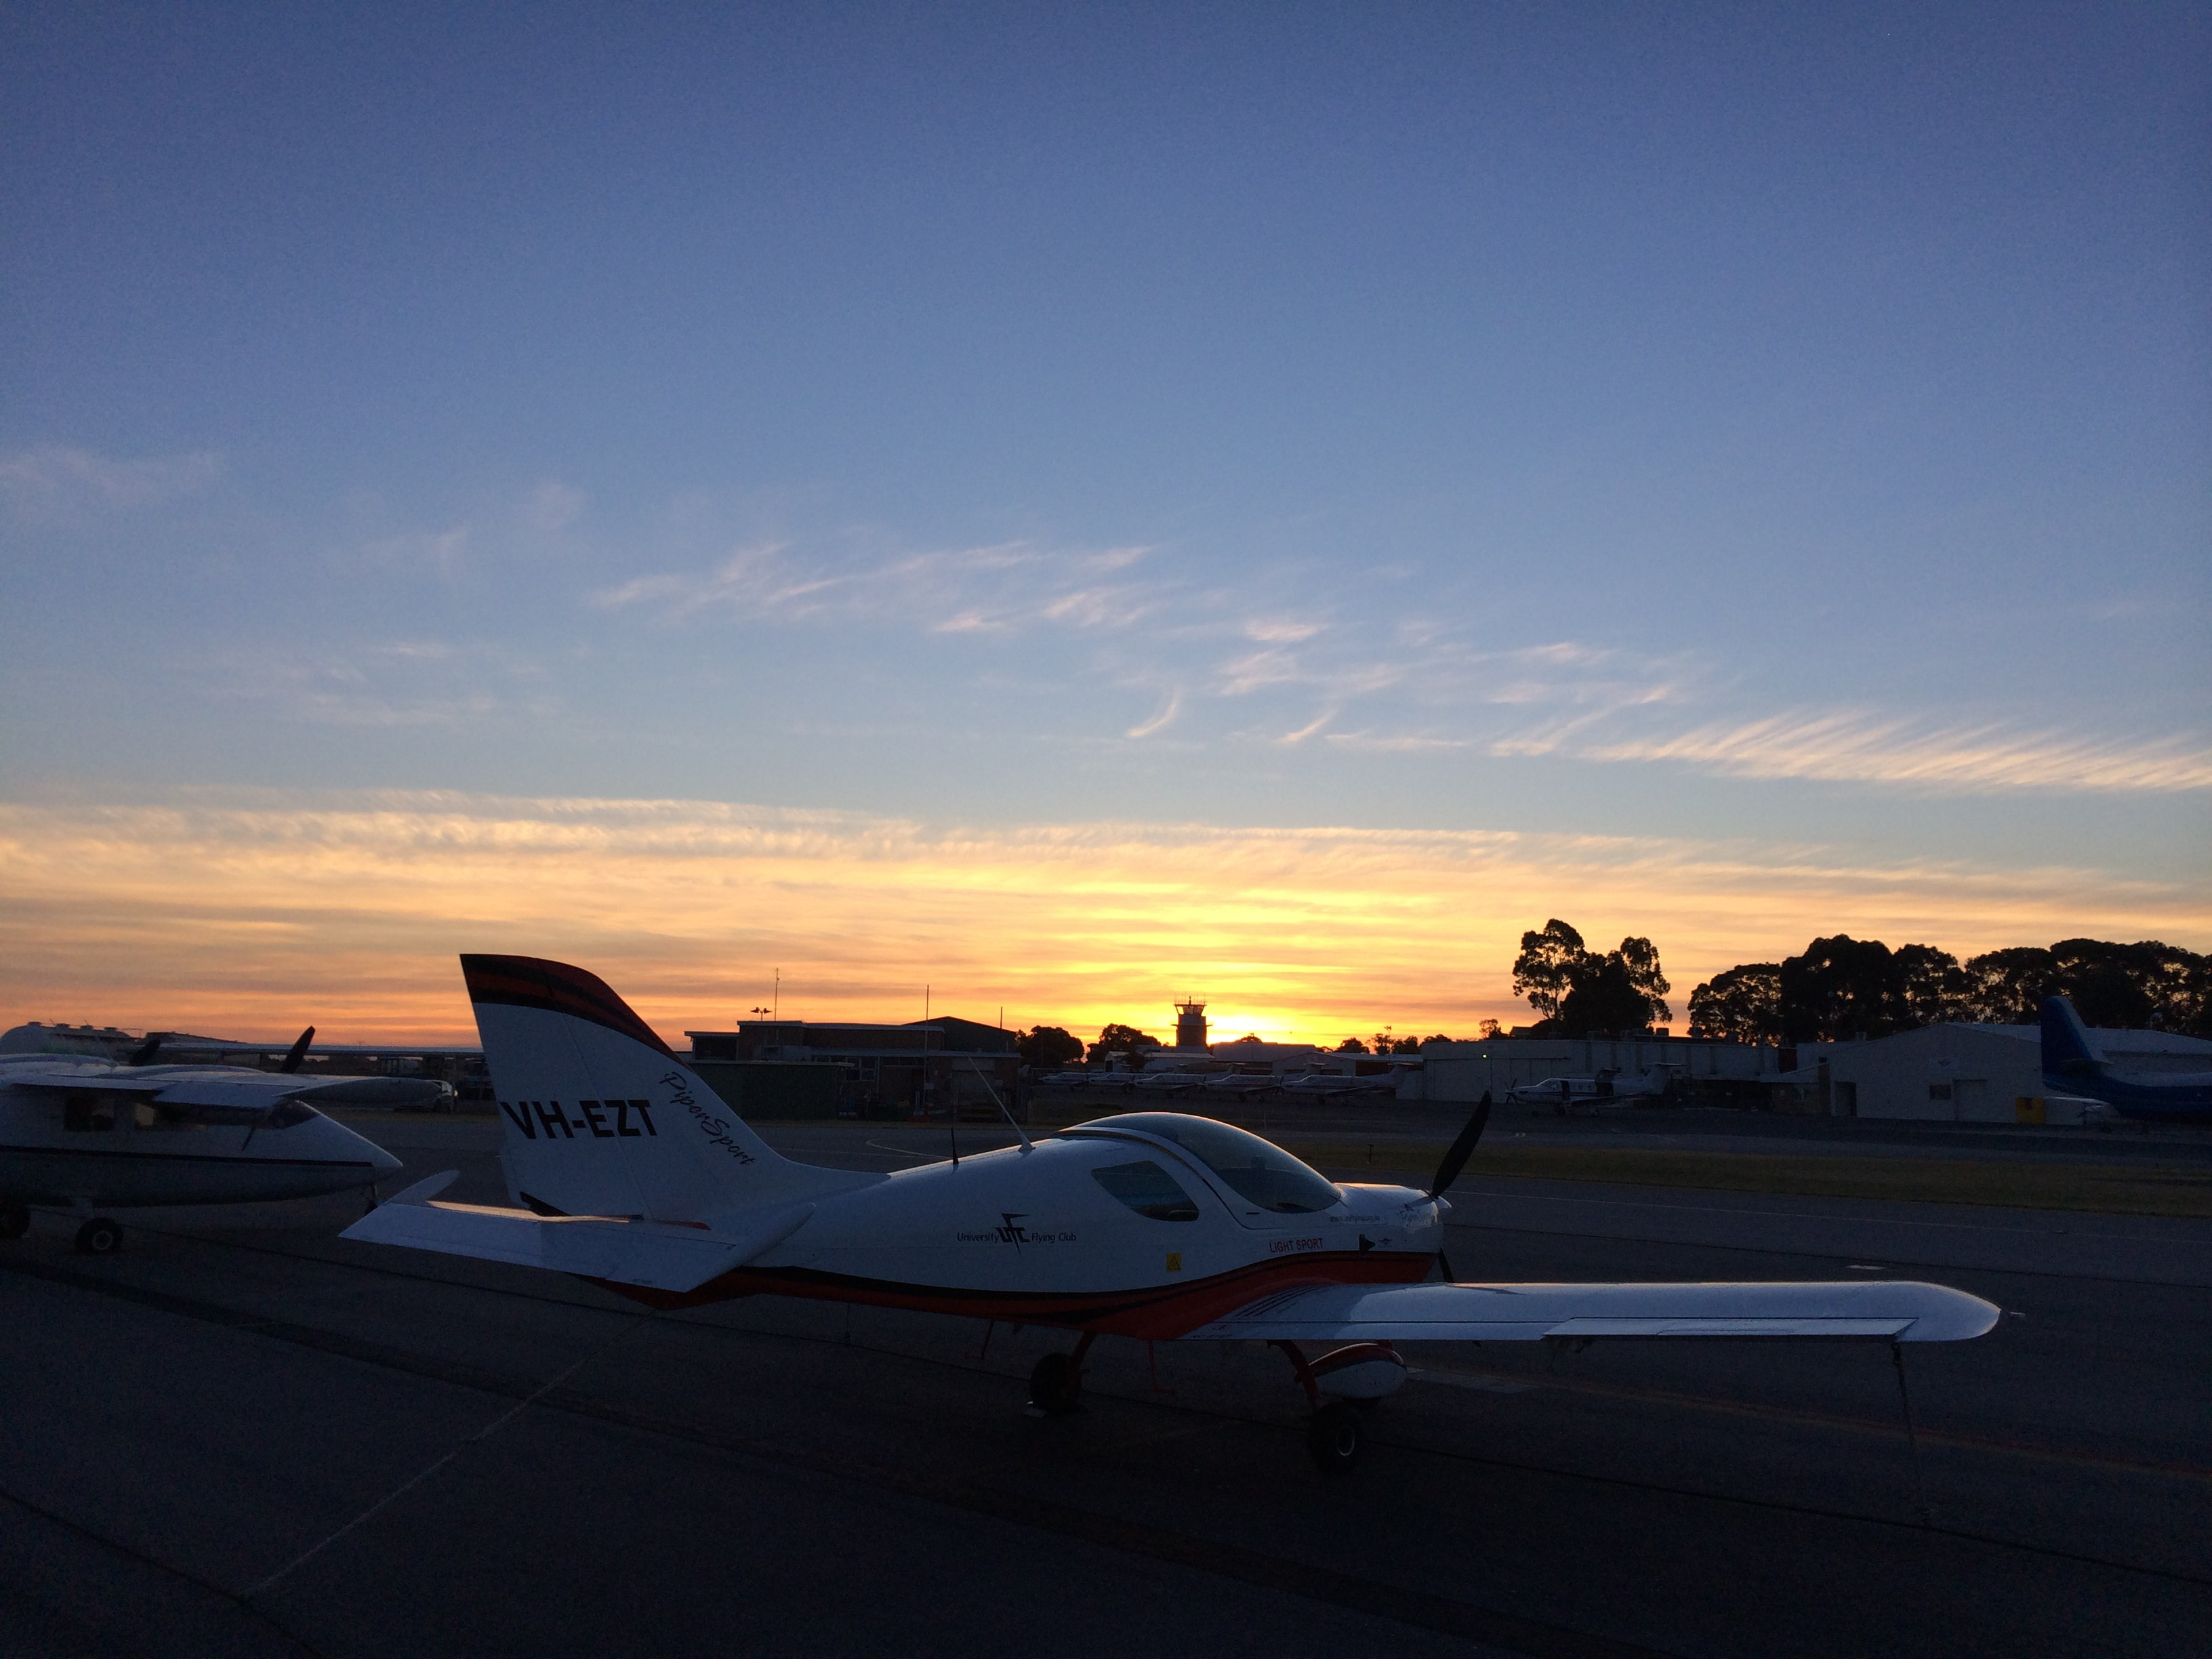 affordable flight training jandakot western australia perth